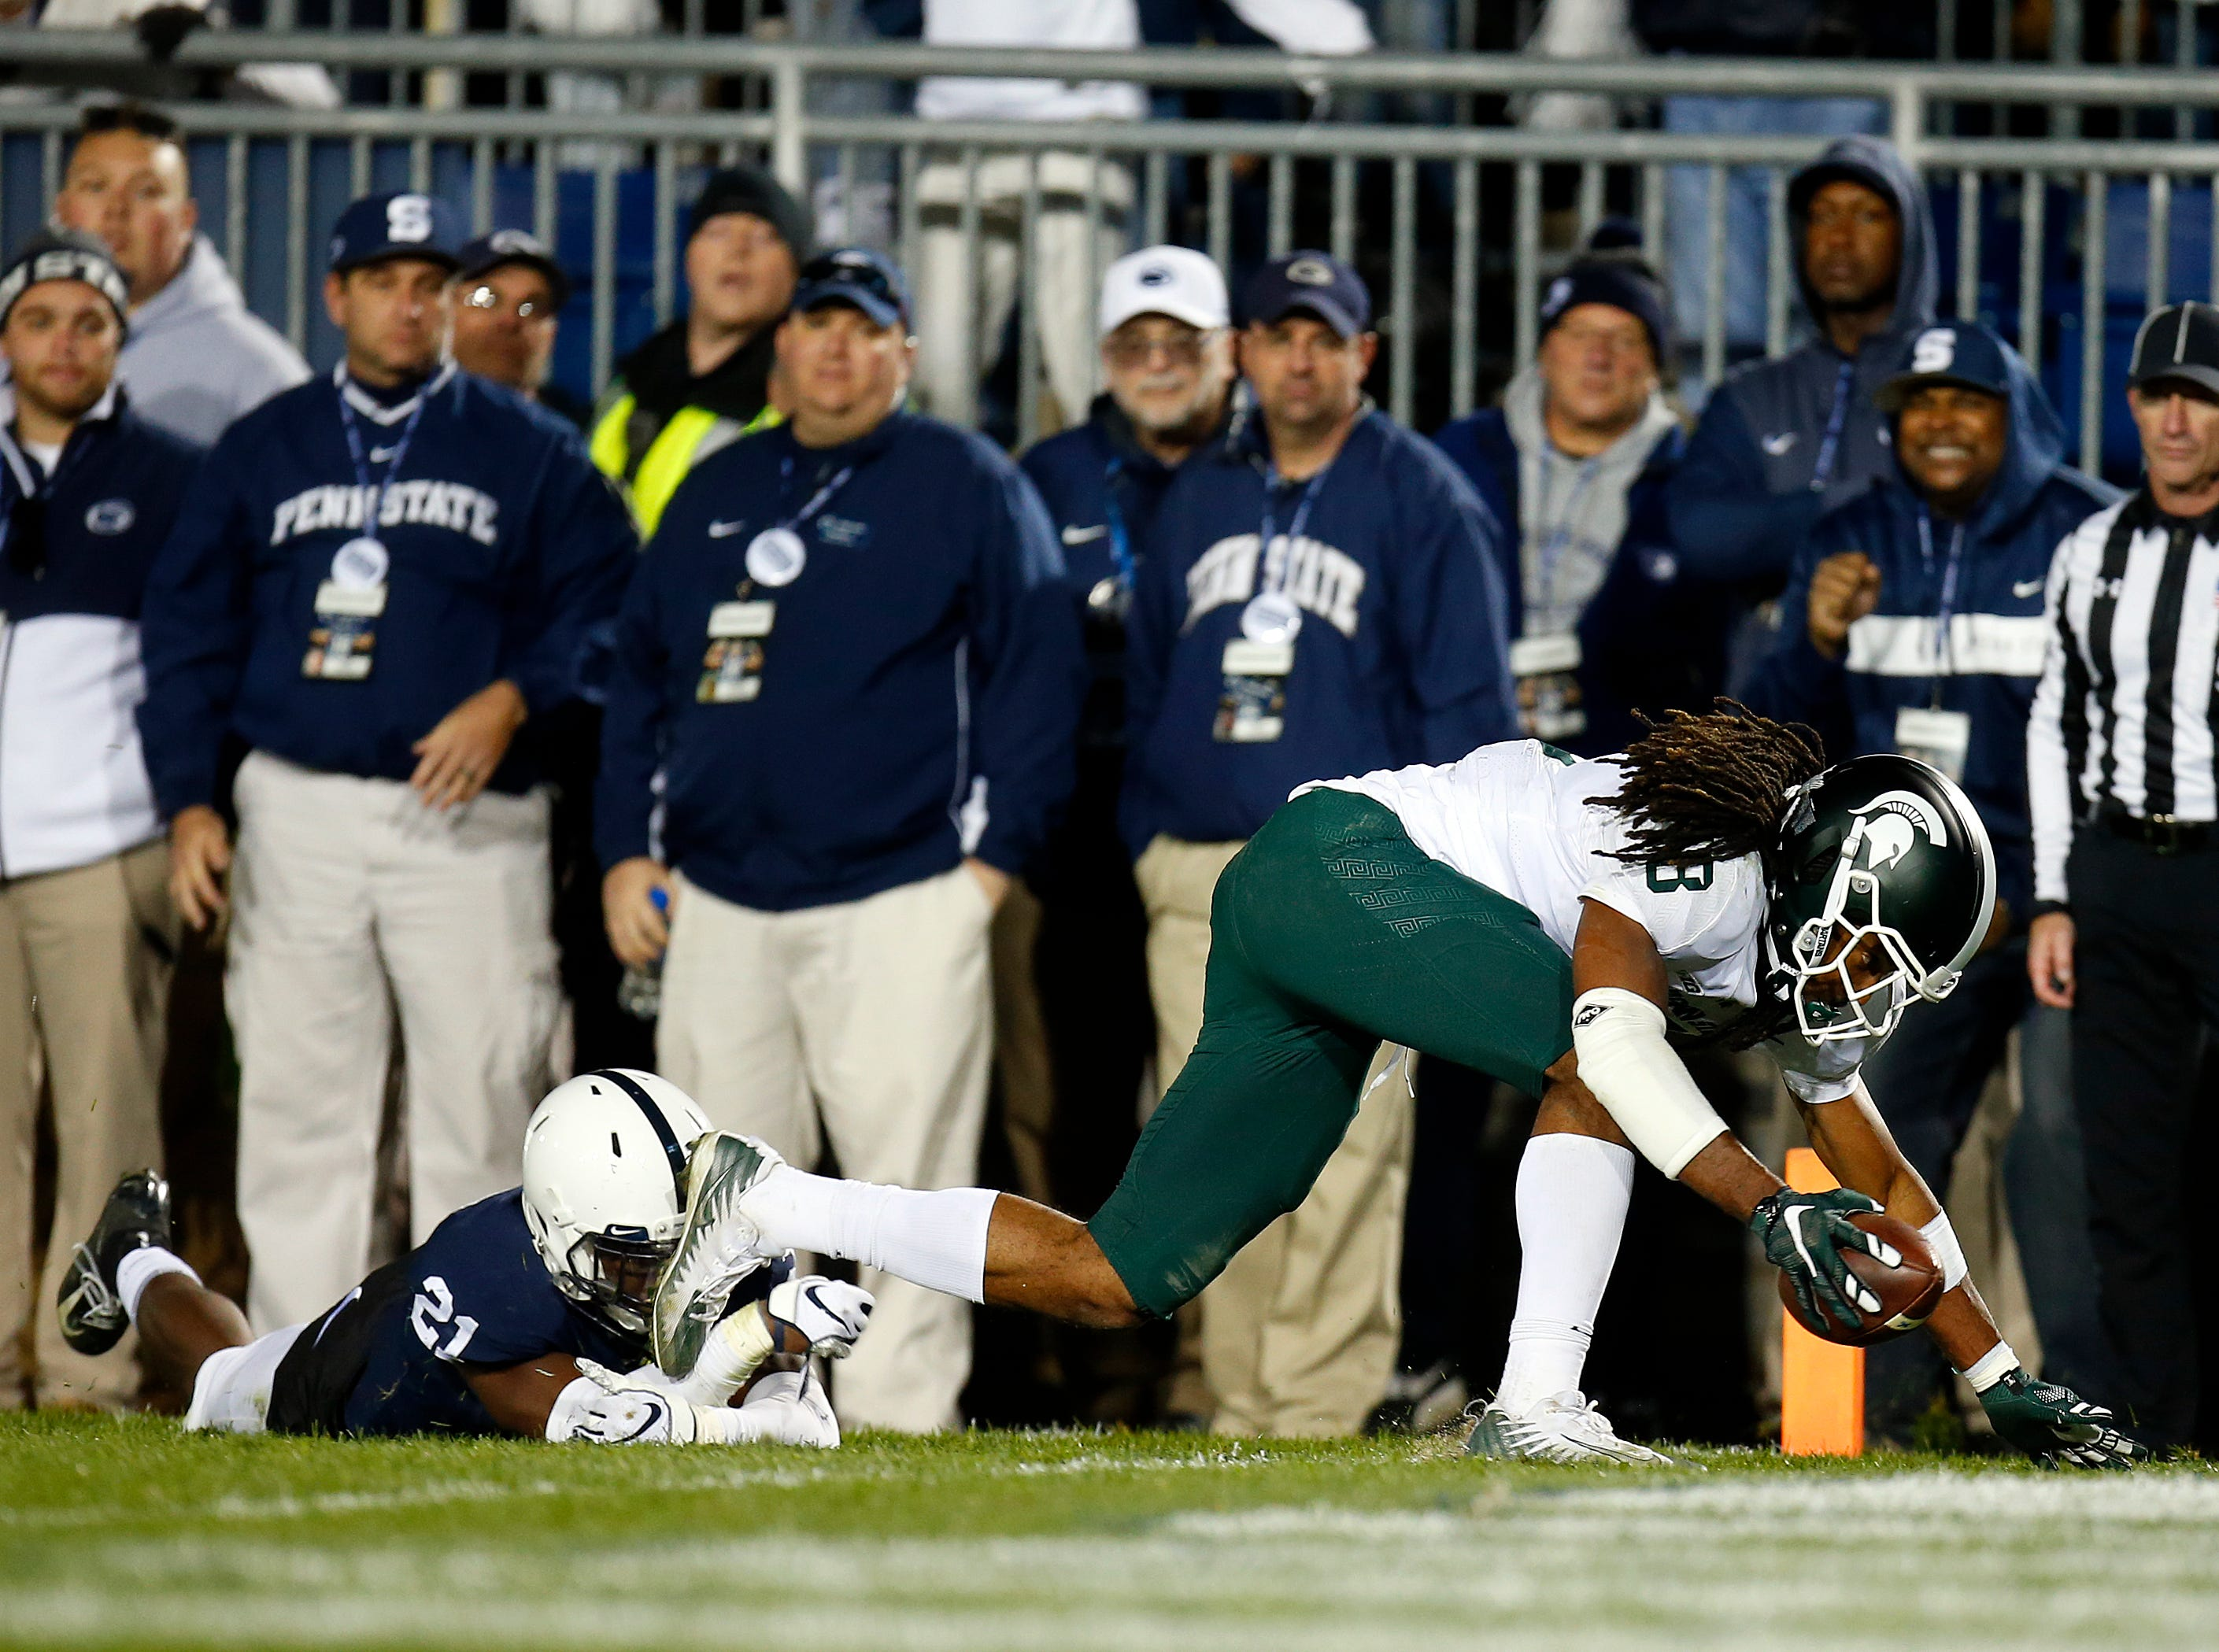 Oct. 13, 2018: Unranked Michigan State 21, No. 8 Penn State 17: Felton Davis III catches a 25-yard touchdown pass late in the fourth quarter.